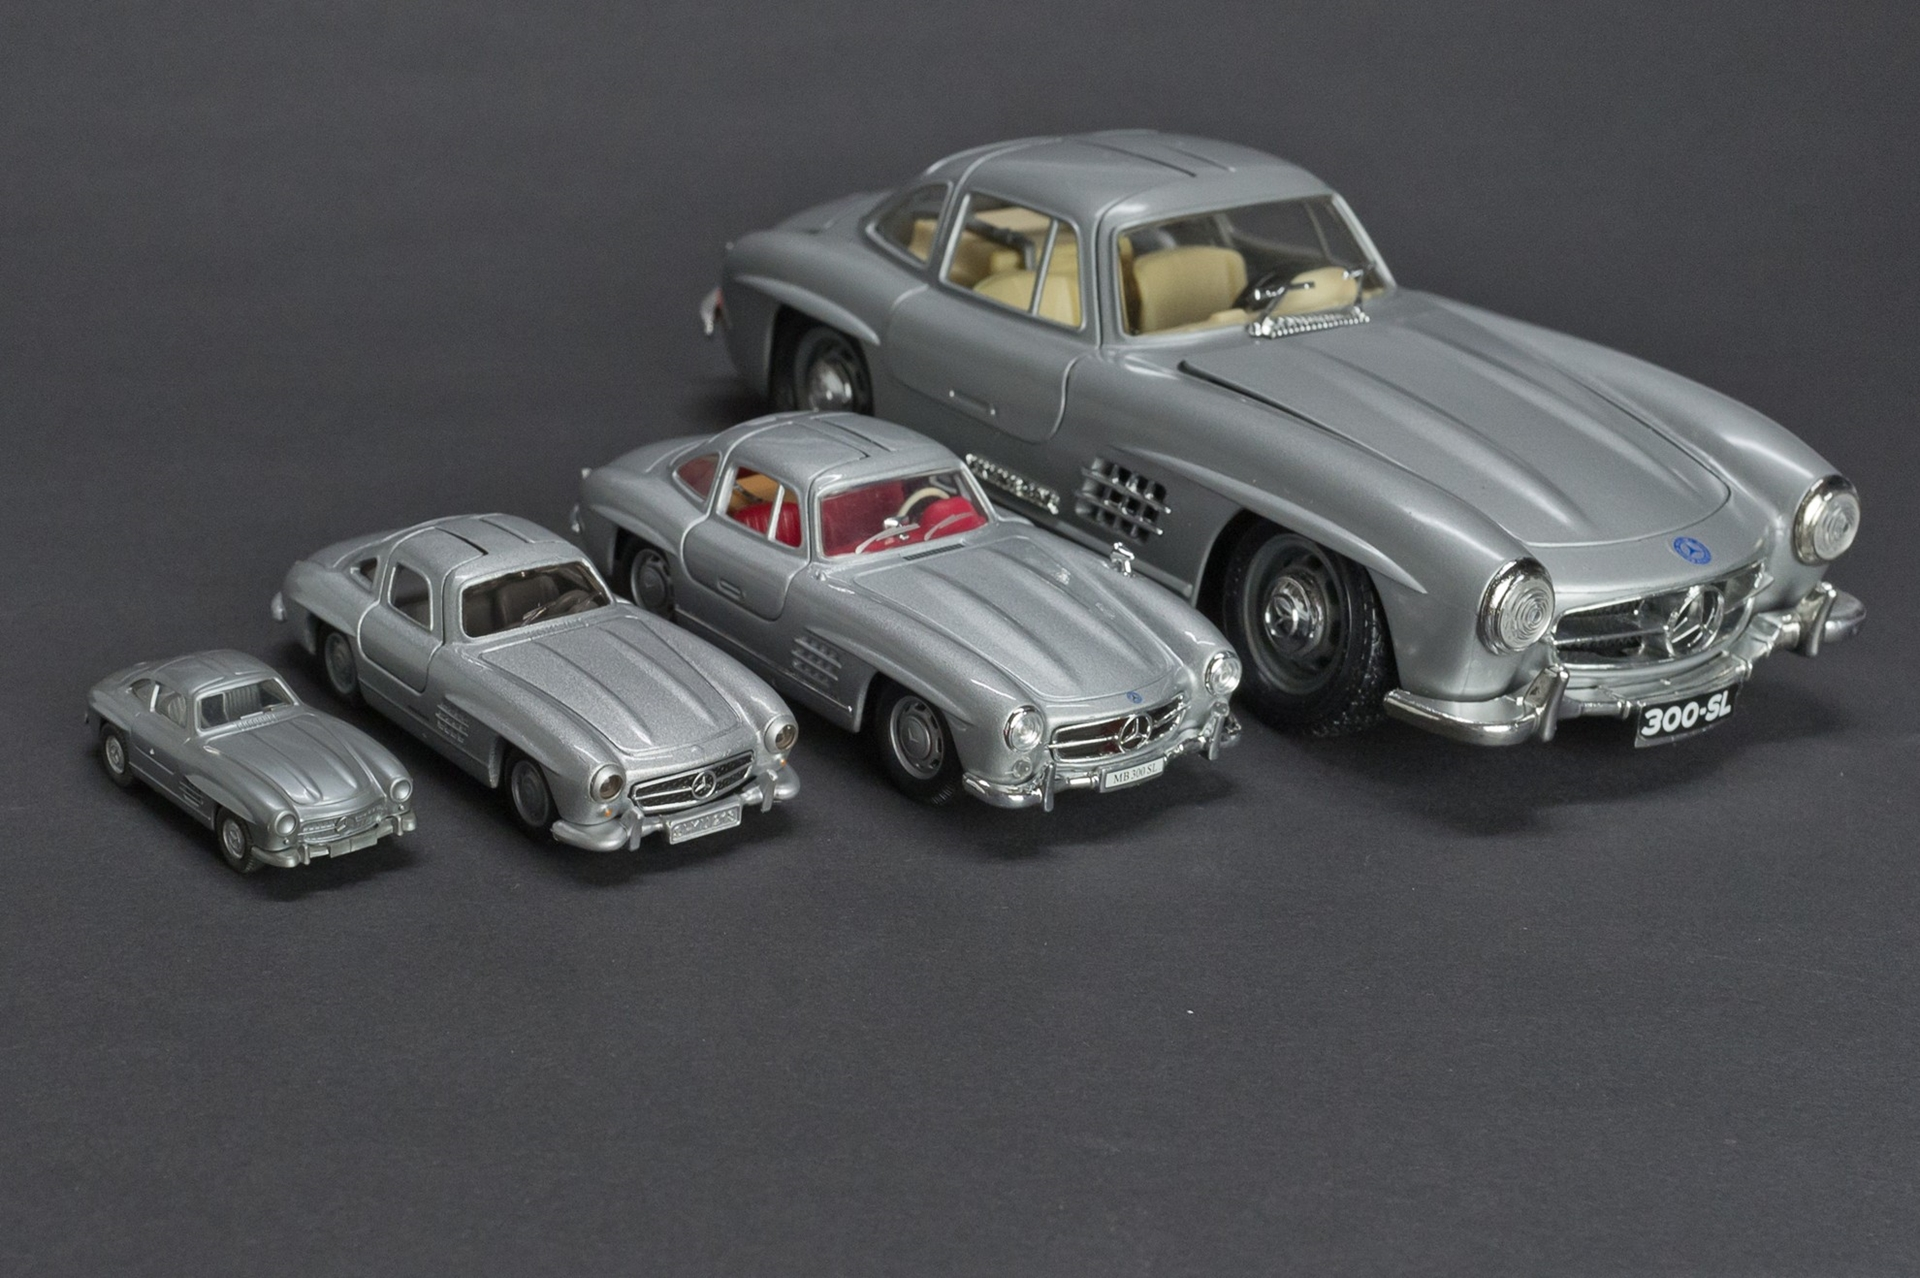 Mercedes-Benz Mini Toy Model Cars